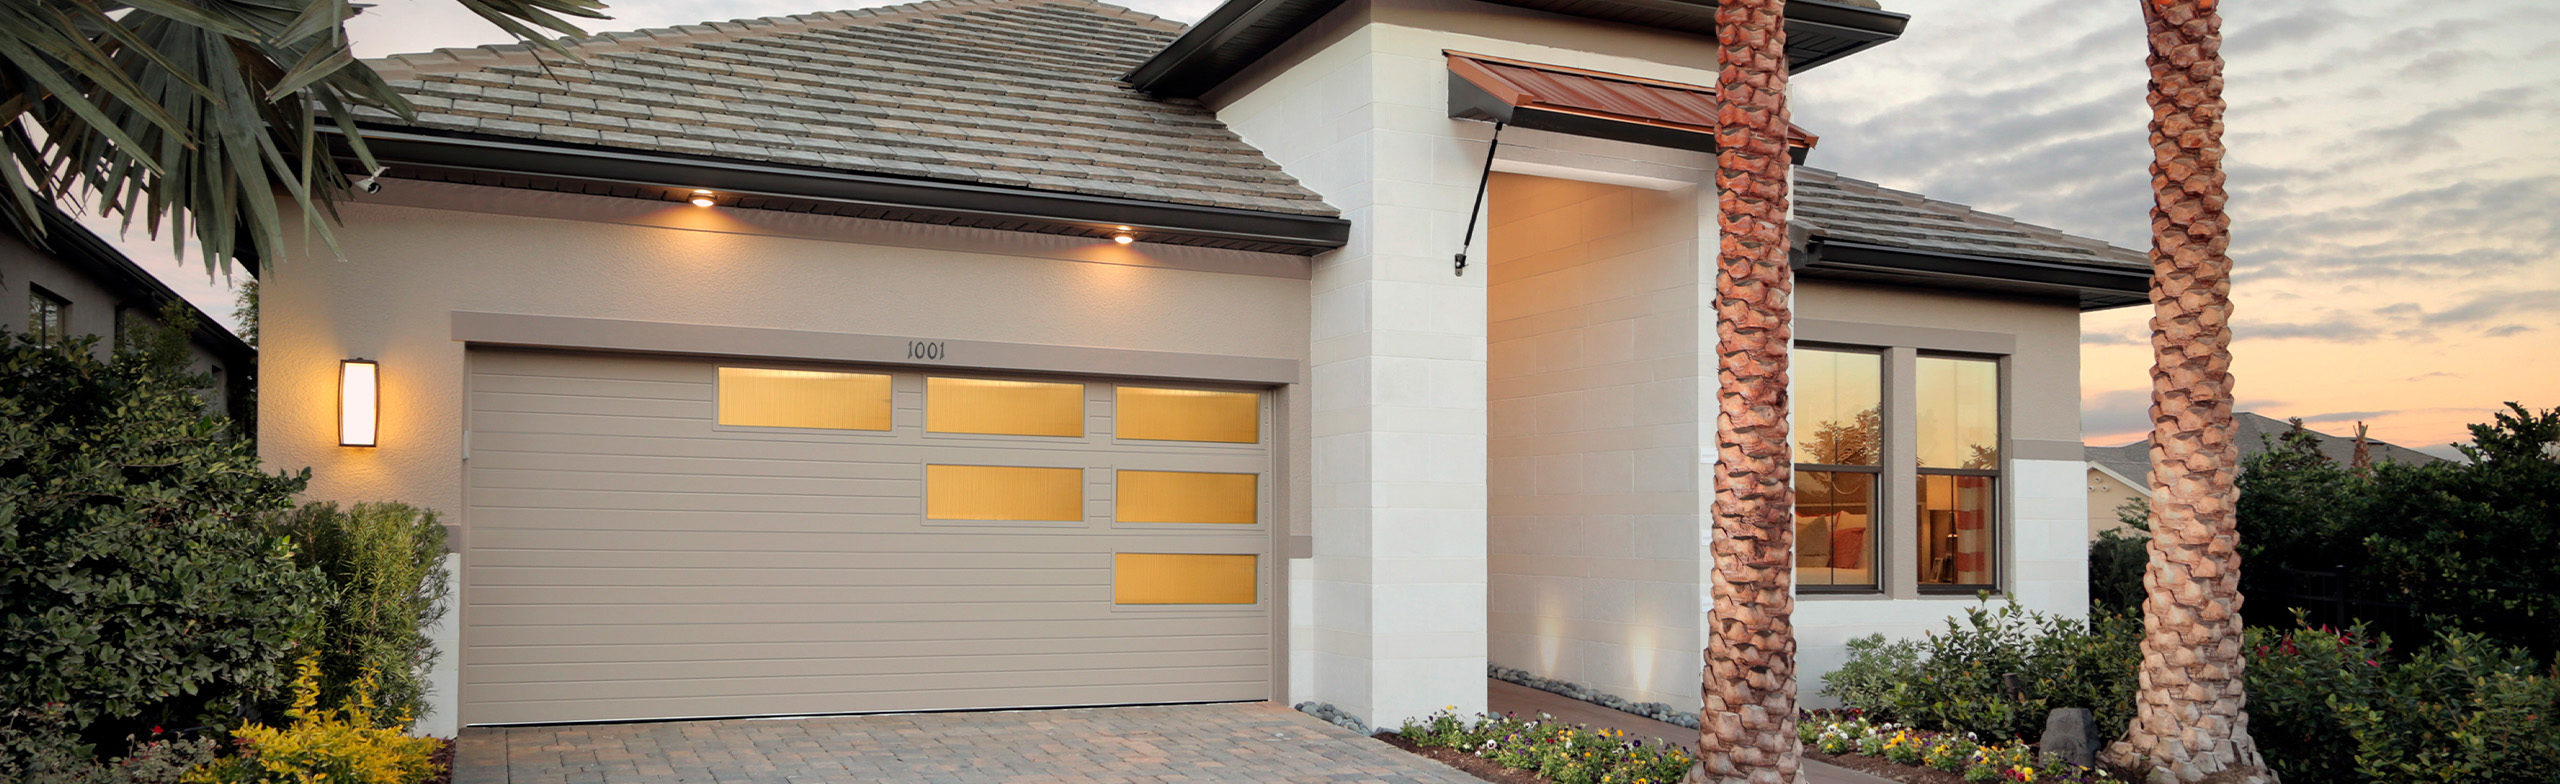 Repair and Buy Garage Doors at Broten in Coral Springs - Broten Garage Door  Sales